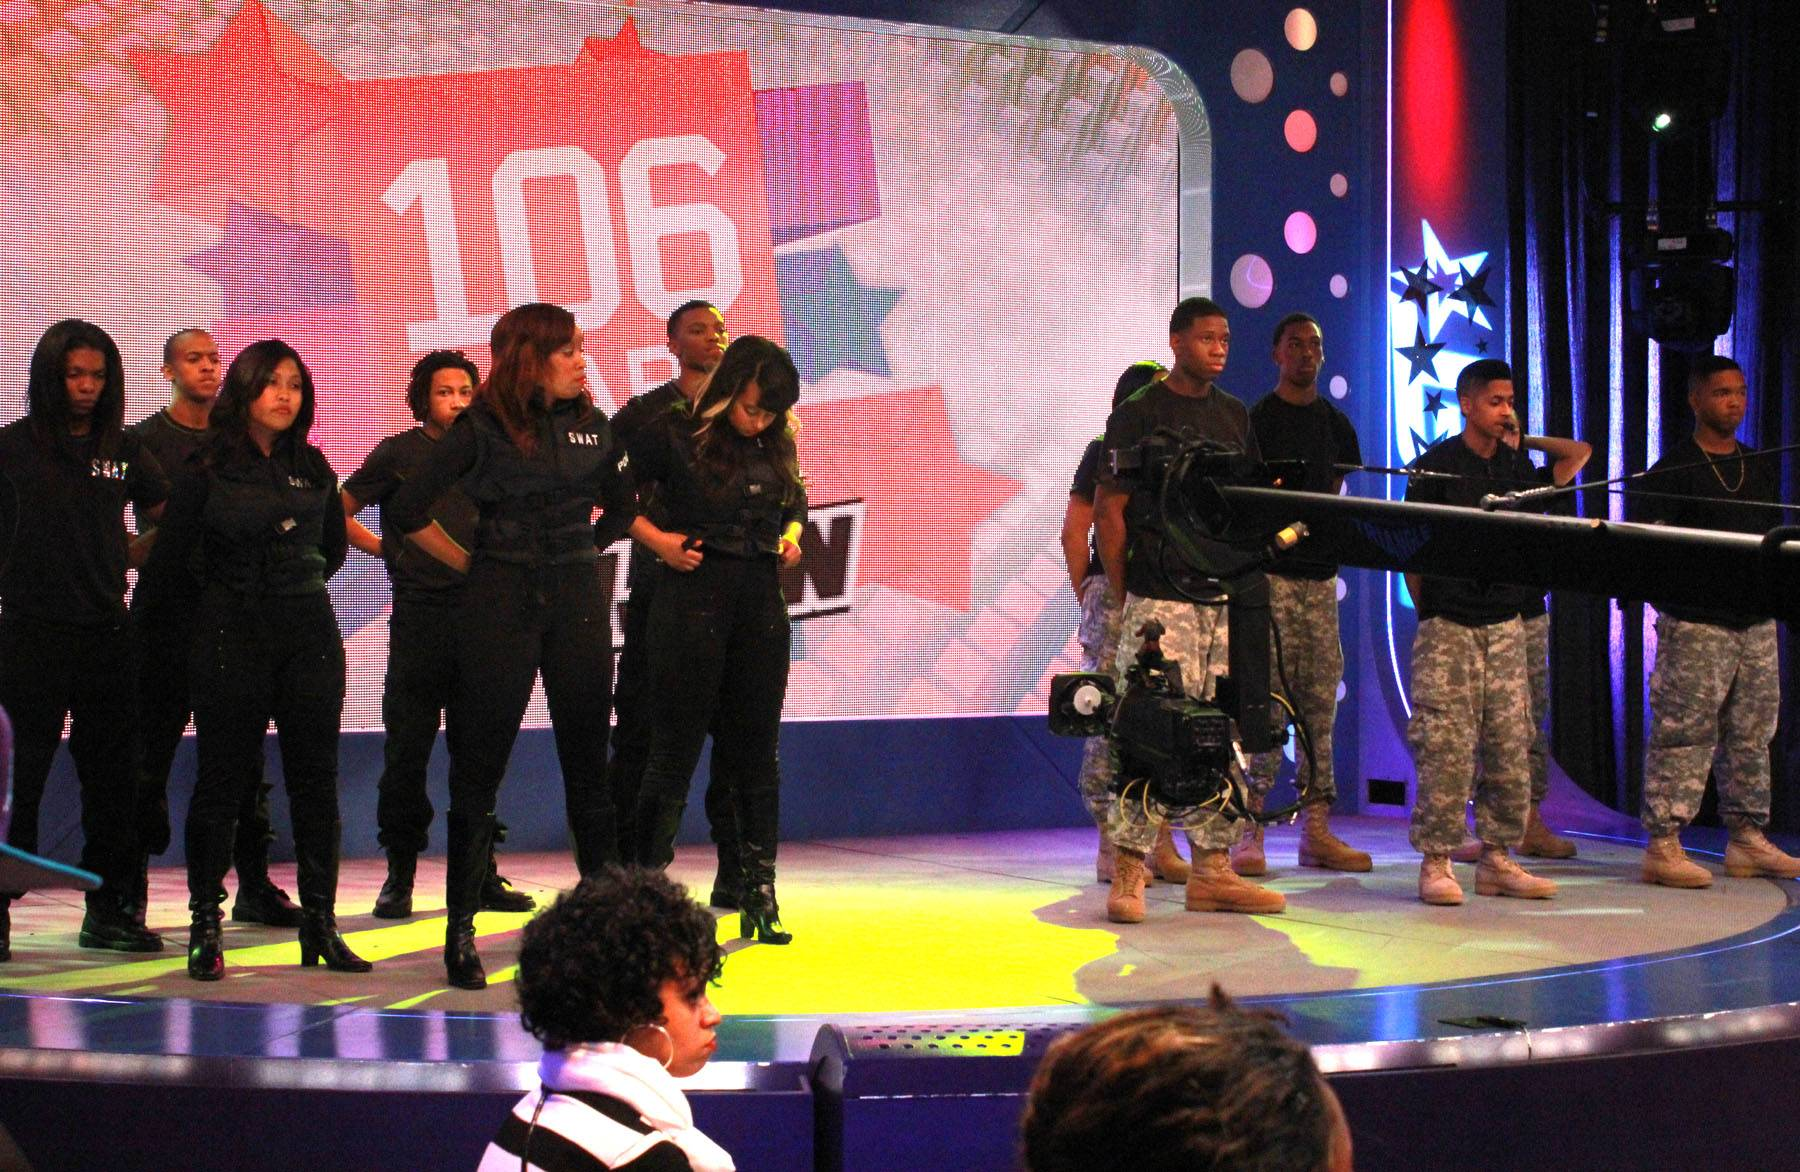 Get Ready - W.O.W. performers on set at 106 & Park. (photo by: Slim)